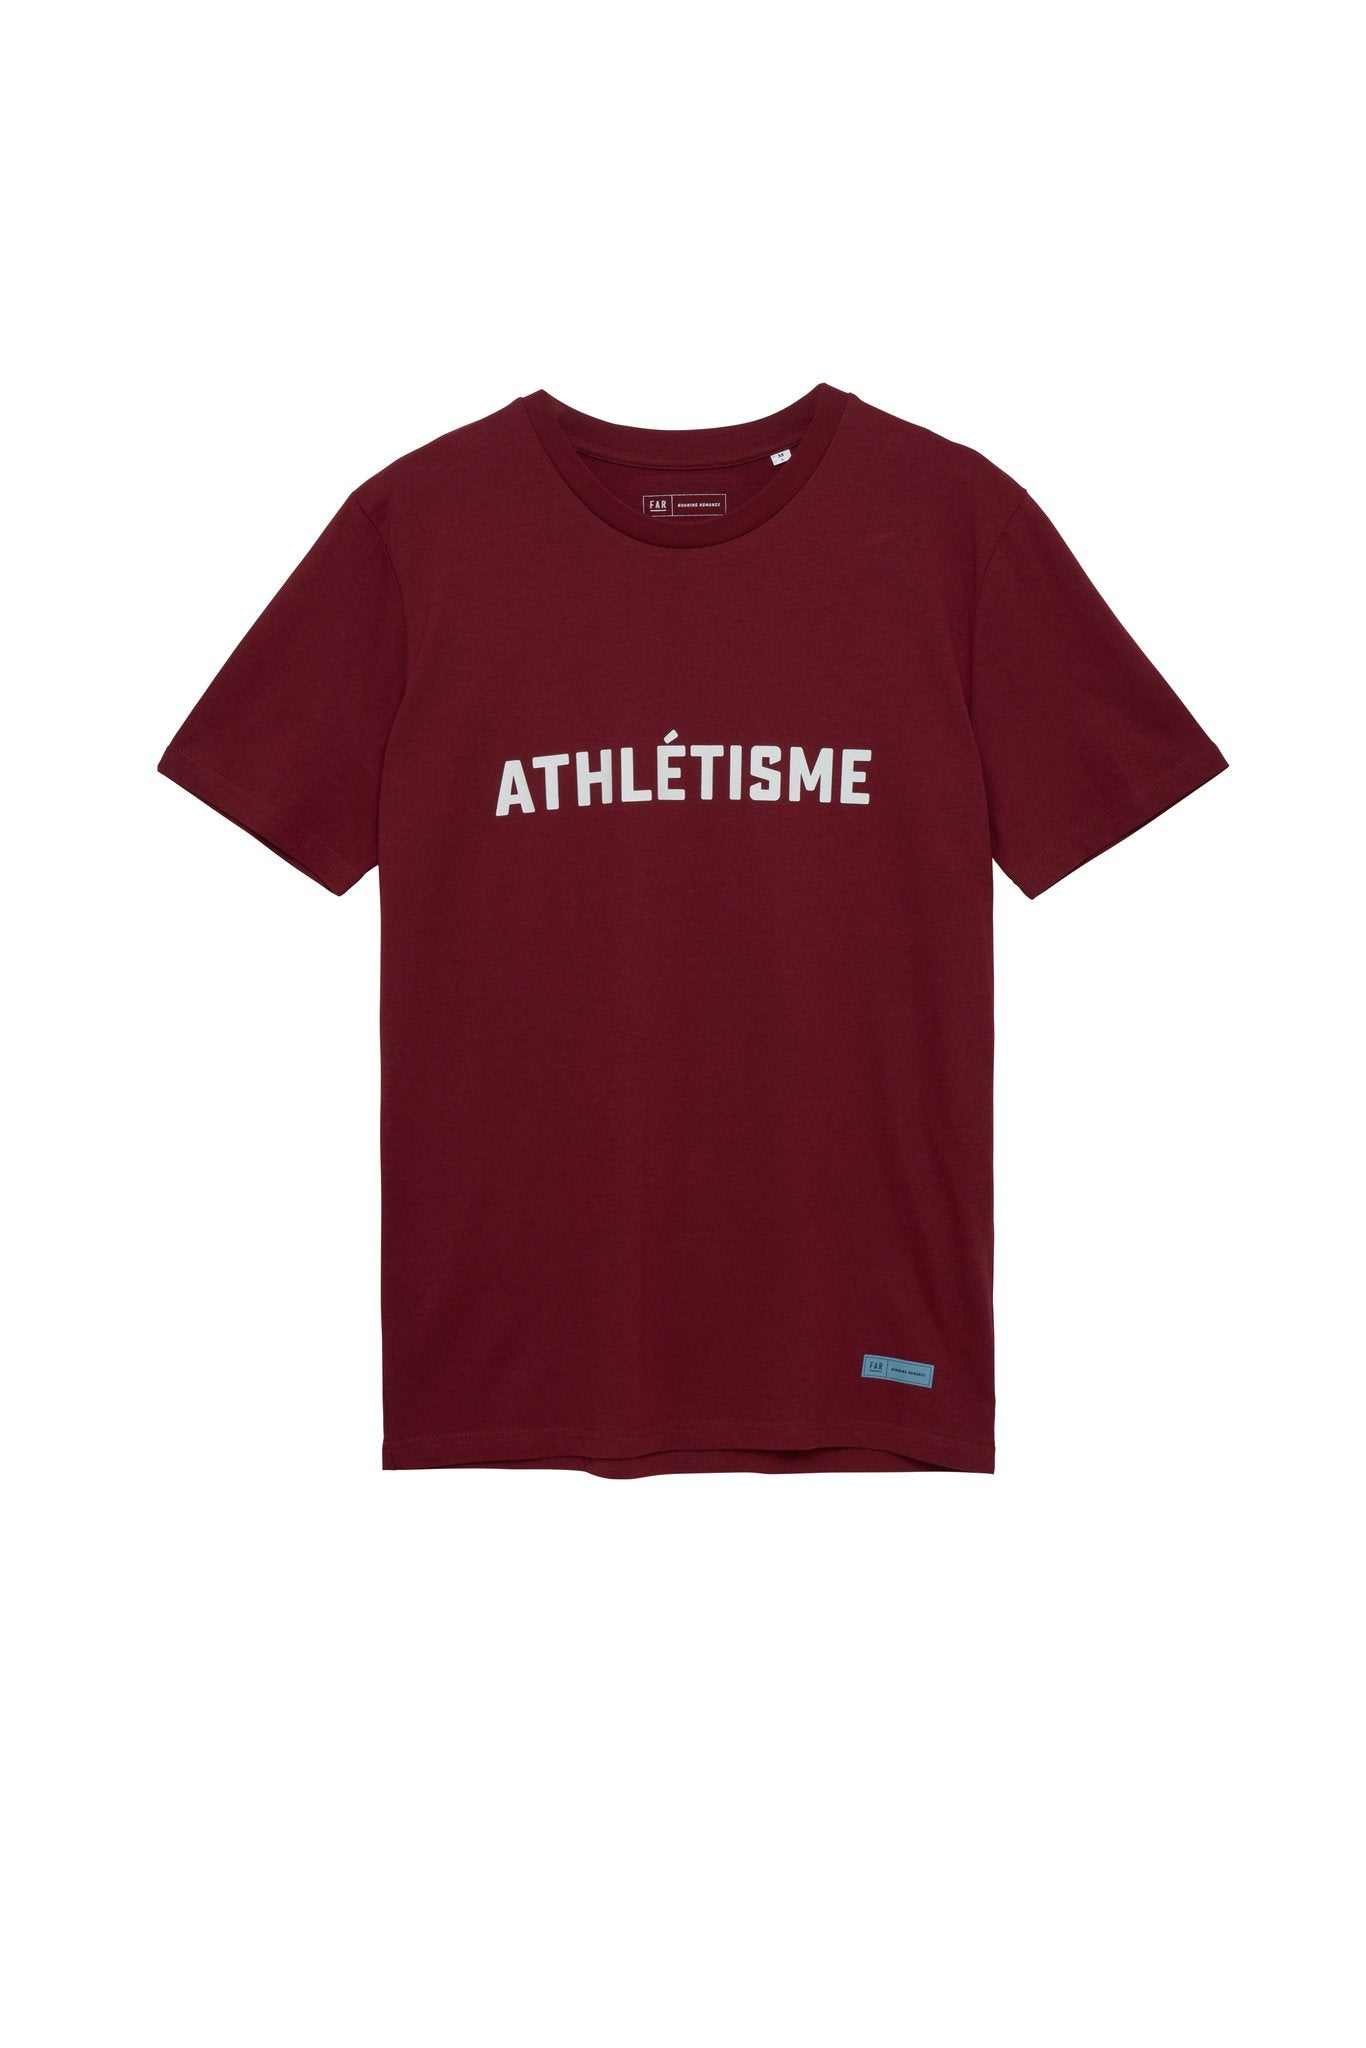 FAR Organic Cotton Athlétisme Tee - Burgundy